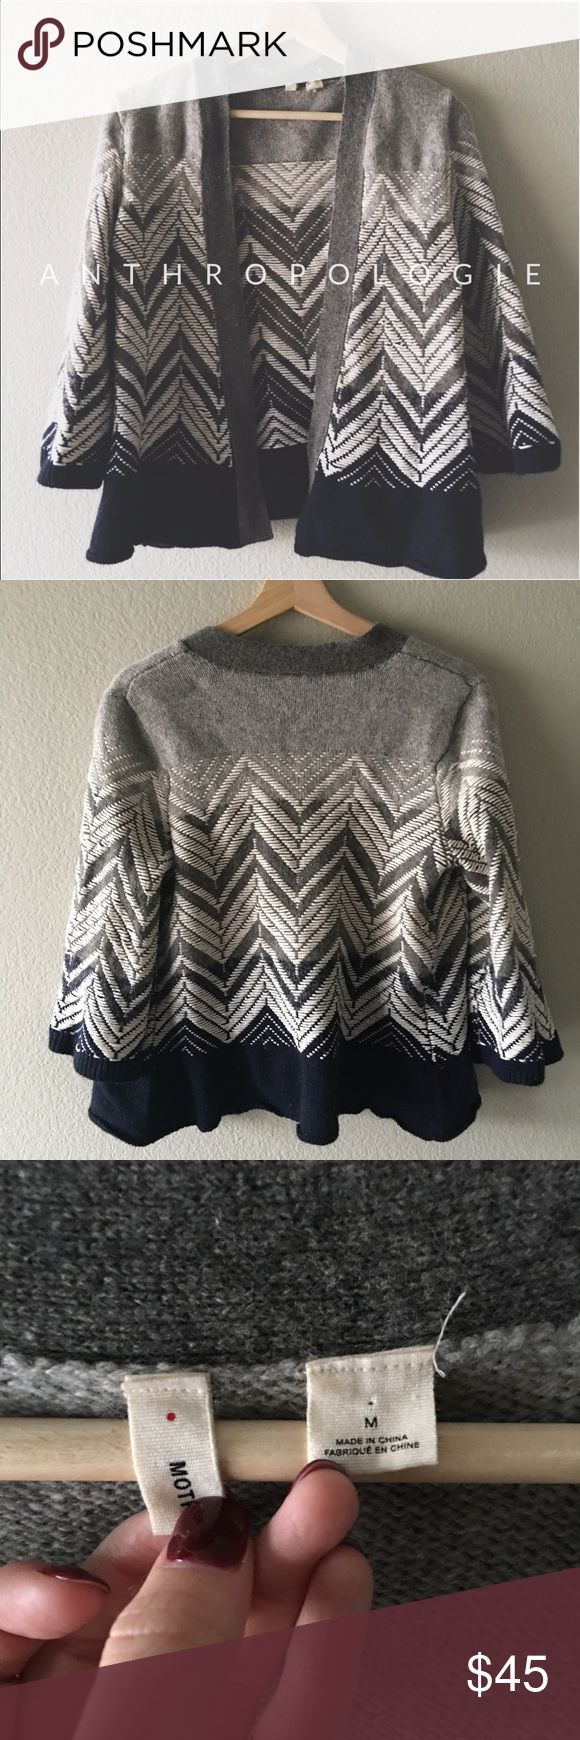 ❄️❄️❄️• Anthropologie Moth Cardigan Awesome condition! Love the different tones of grey with the zig zag effect. The stitching detail is so incredible Anthropologie Sweaters Cardigans